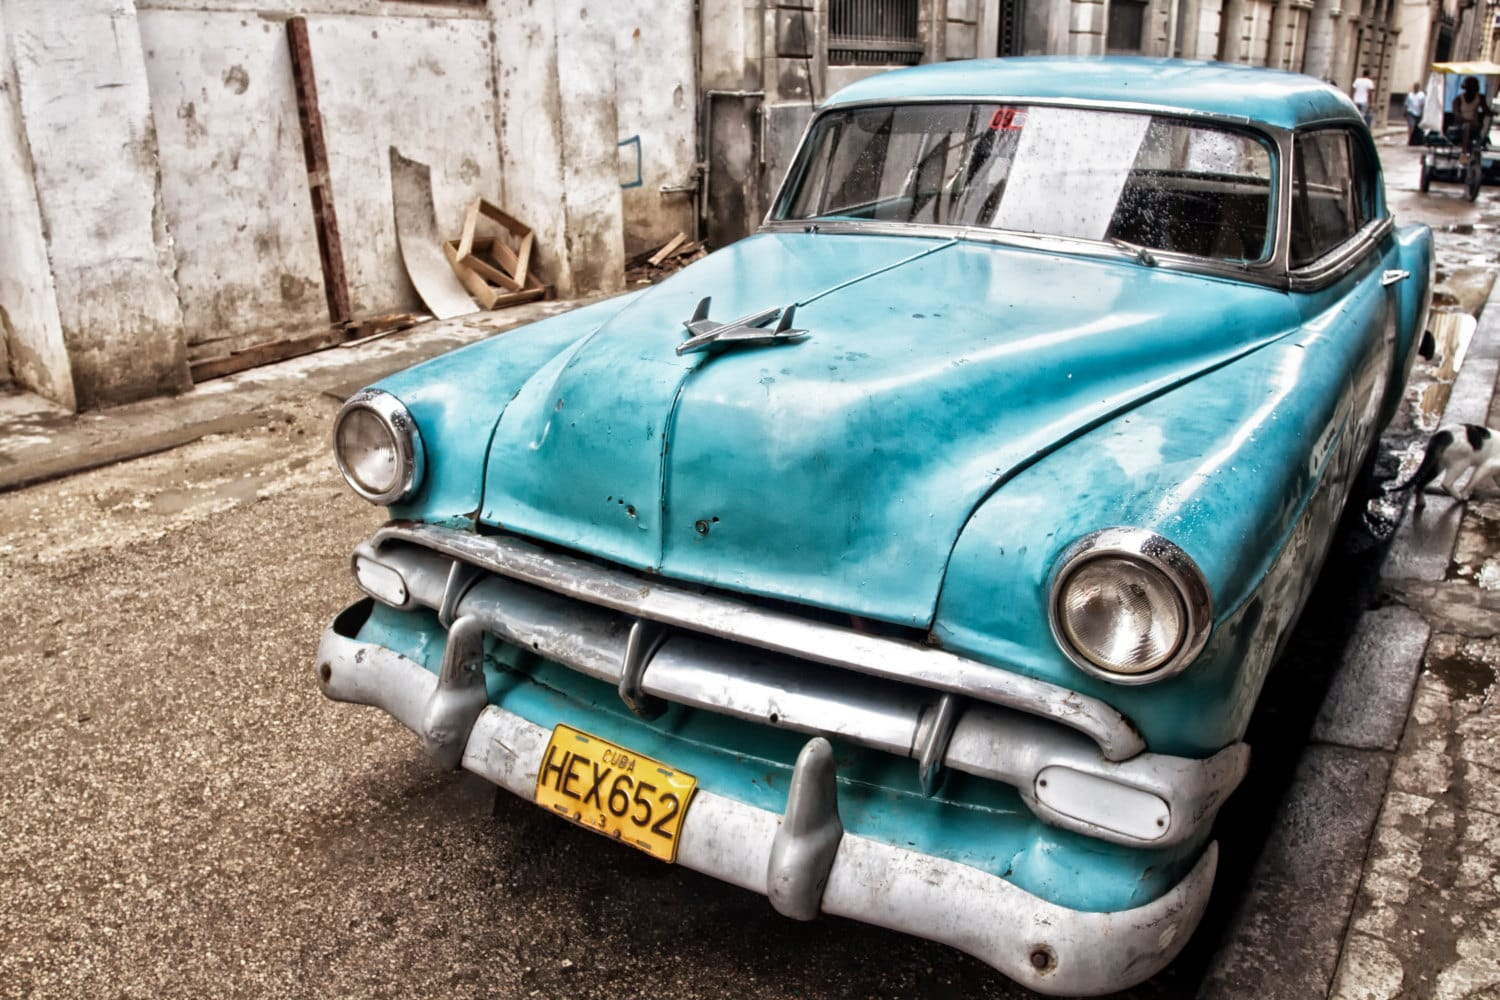 List of Synonyms and Antonyms of the Word: Vintage Chevy